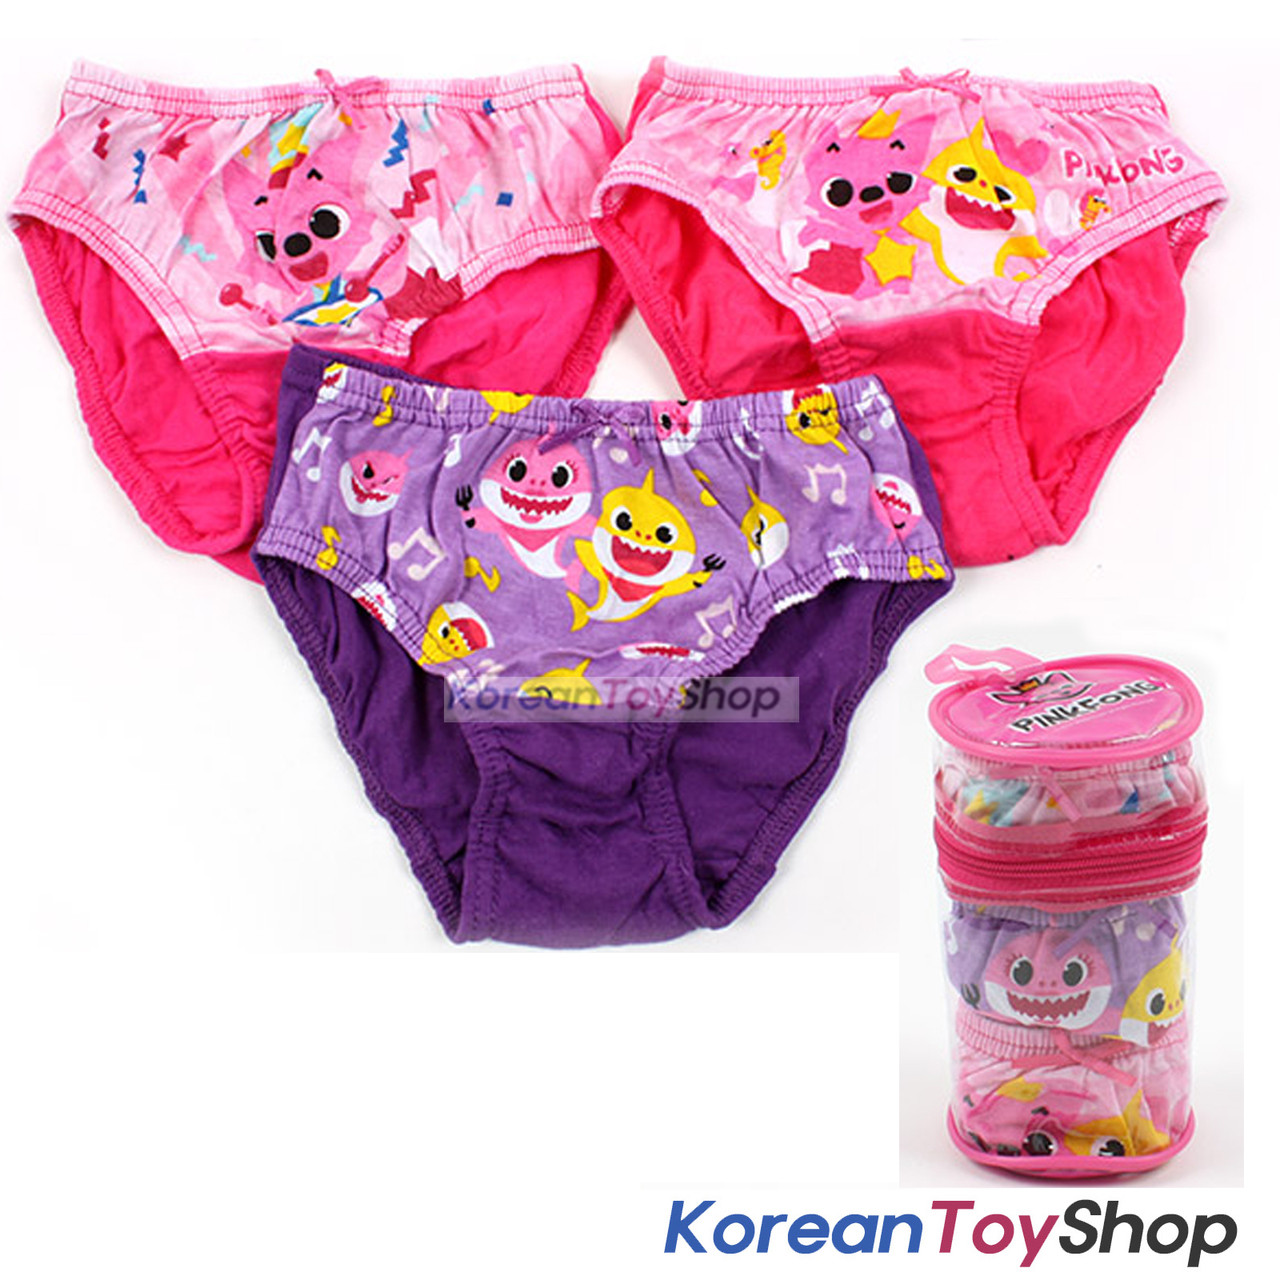 High Quality  Pink 2-3 years Girls 100/% Cotton Pants Briefs Knickers